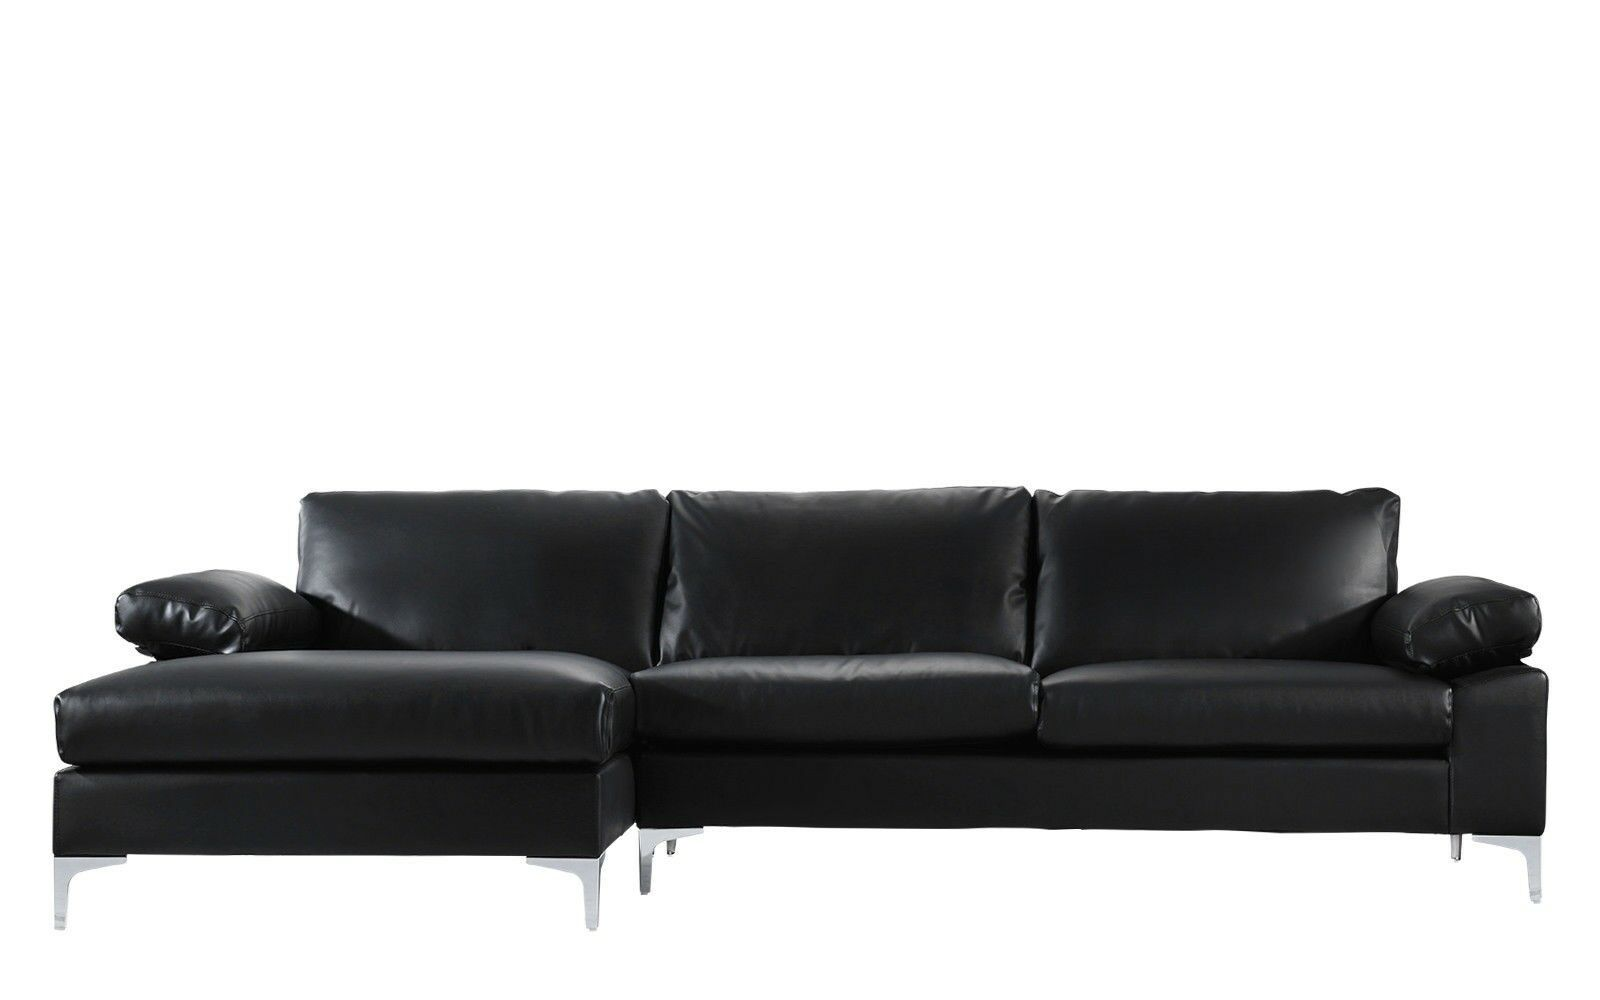 Modern Large Faux Leather Sectional Sofa L Shape Couch Extra Wide Chaise Black